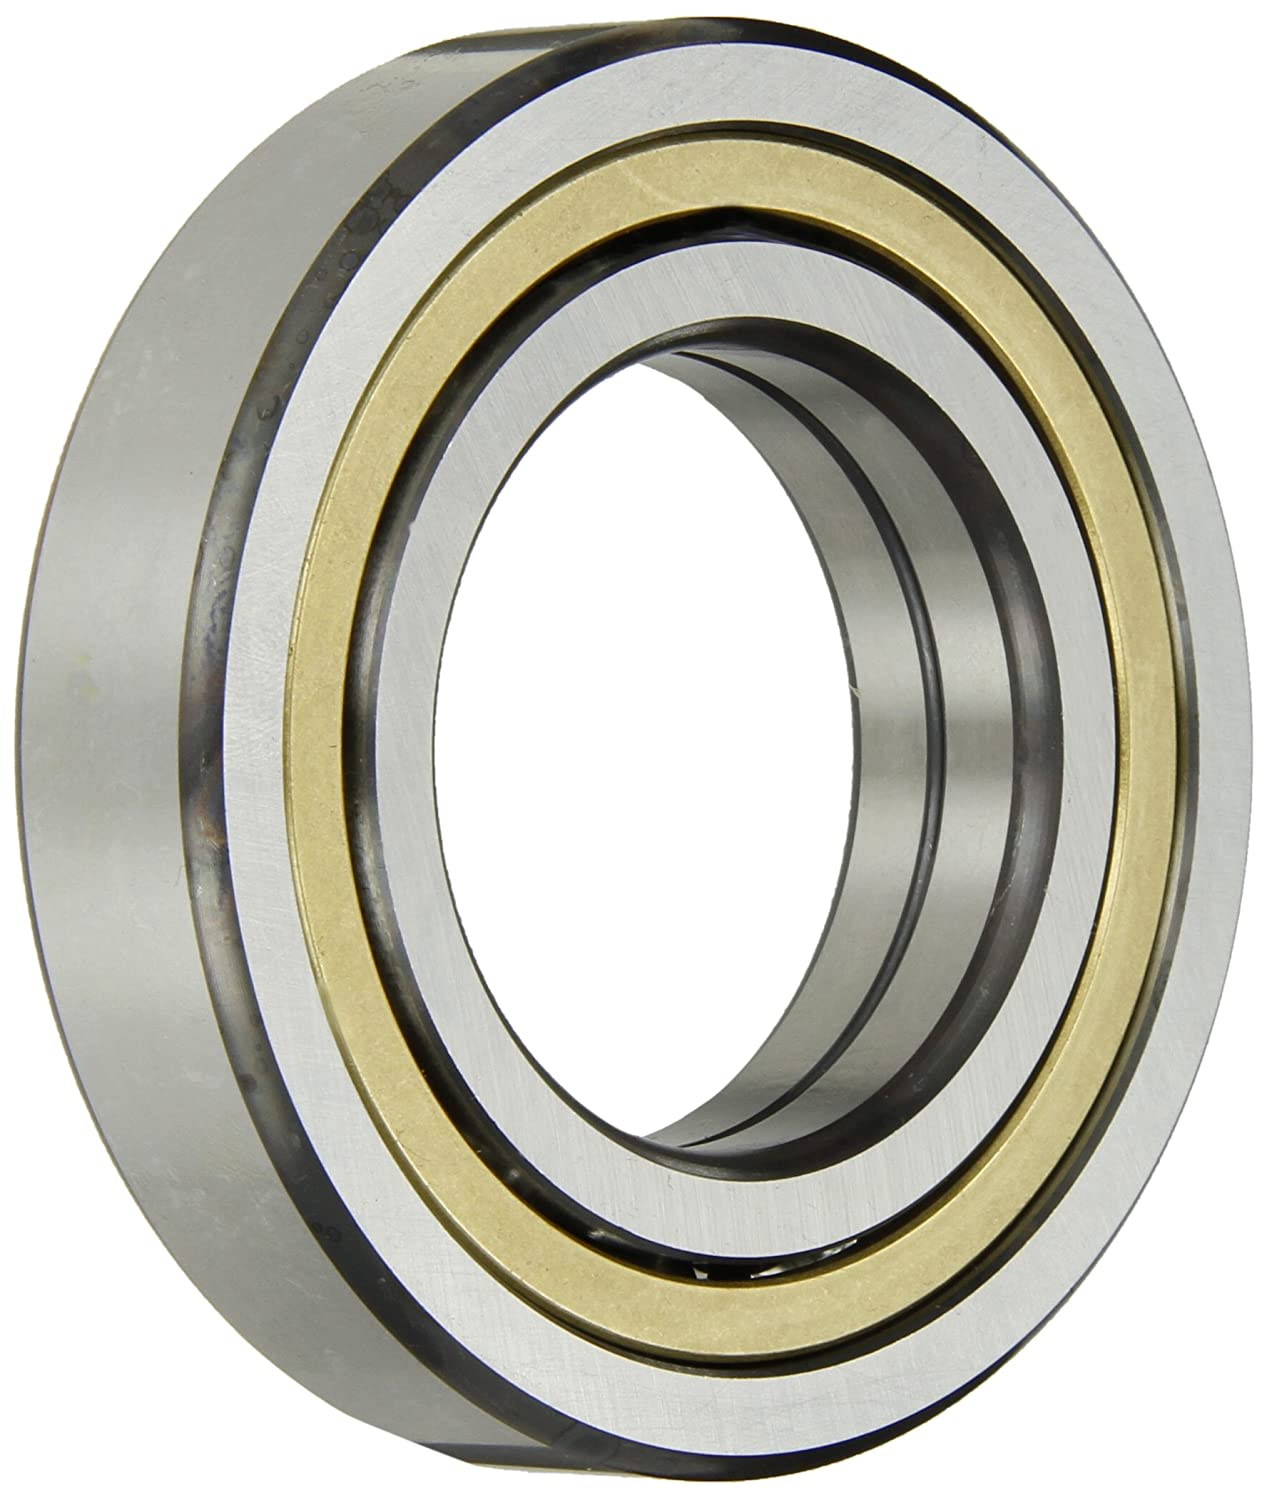 Single Row FAG QJ207MPA Angular Contact Ball Bearing Open 17mm Width Metric Brass Cage Normal Clearance 35mm ID 72mm OD 9800lbf Dynamic Load Capacity 35/° Contact Angle 18000rpm Maximum Rotational Speed 8000lbf Static Load Capacity